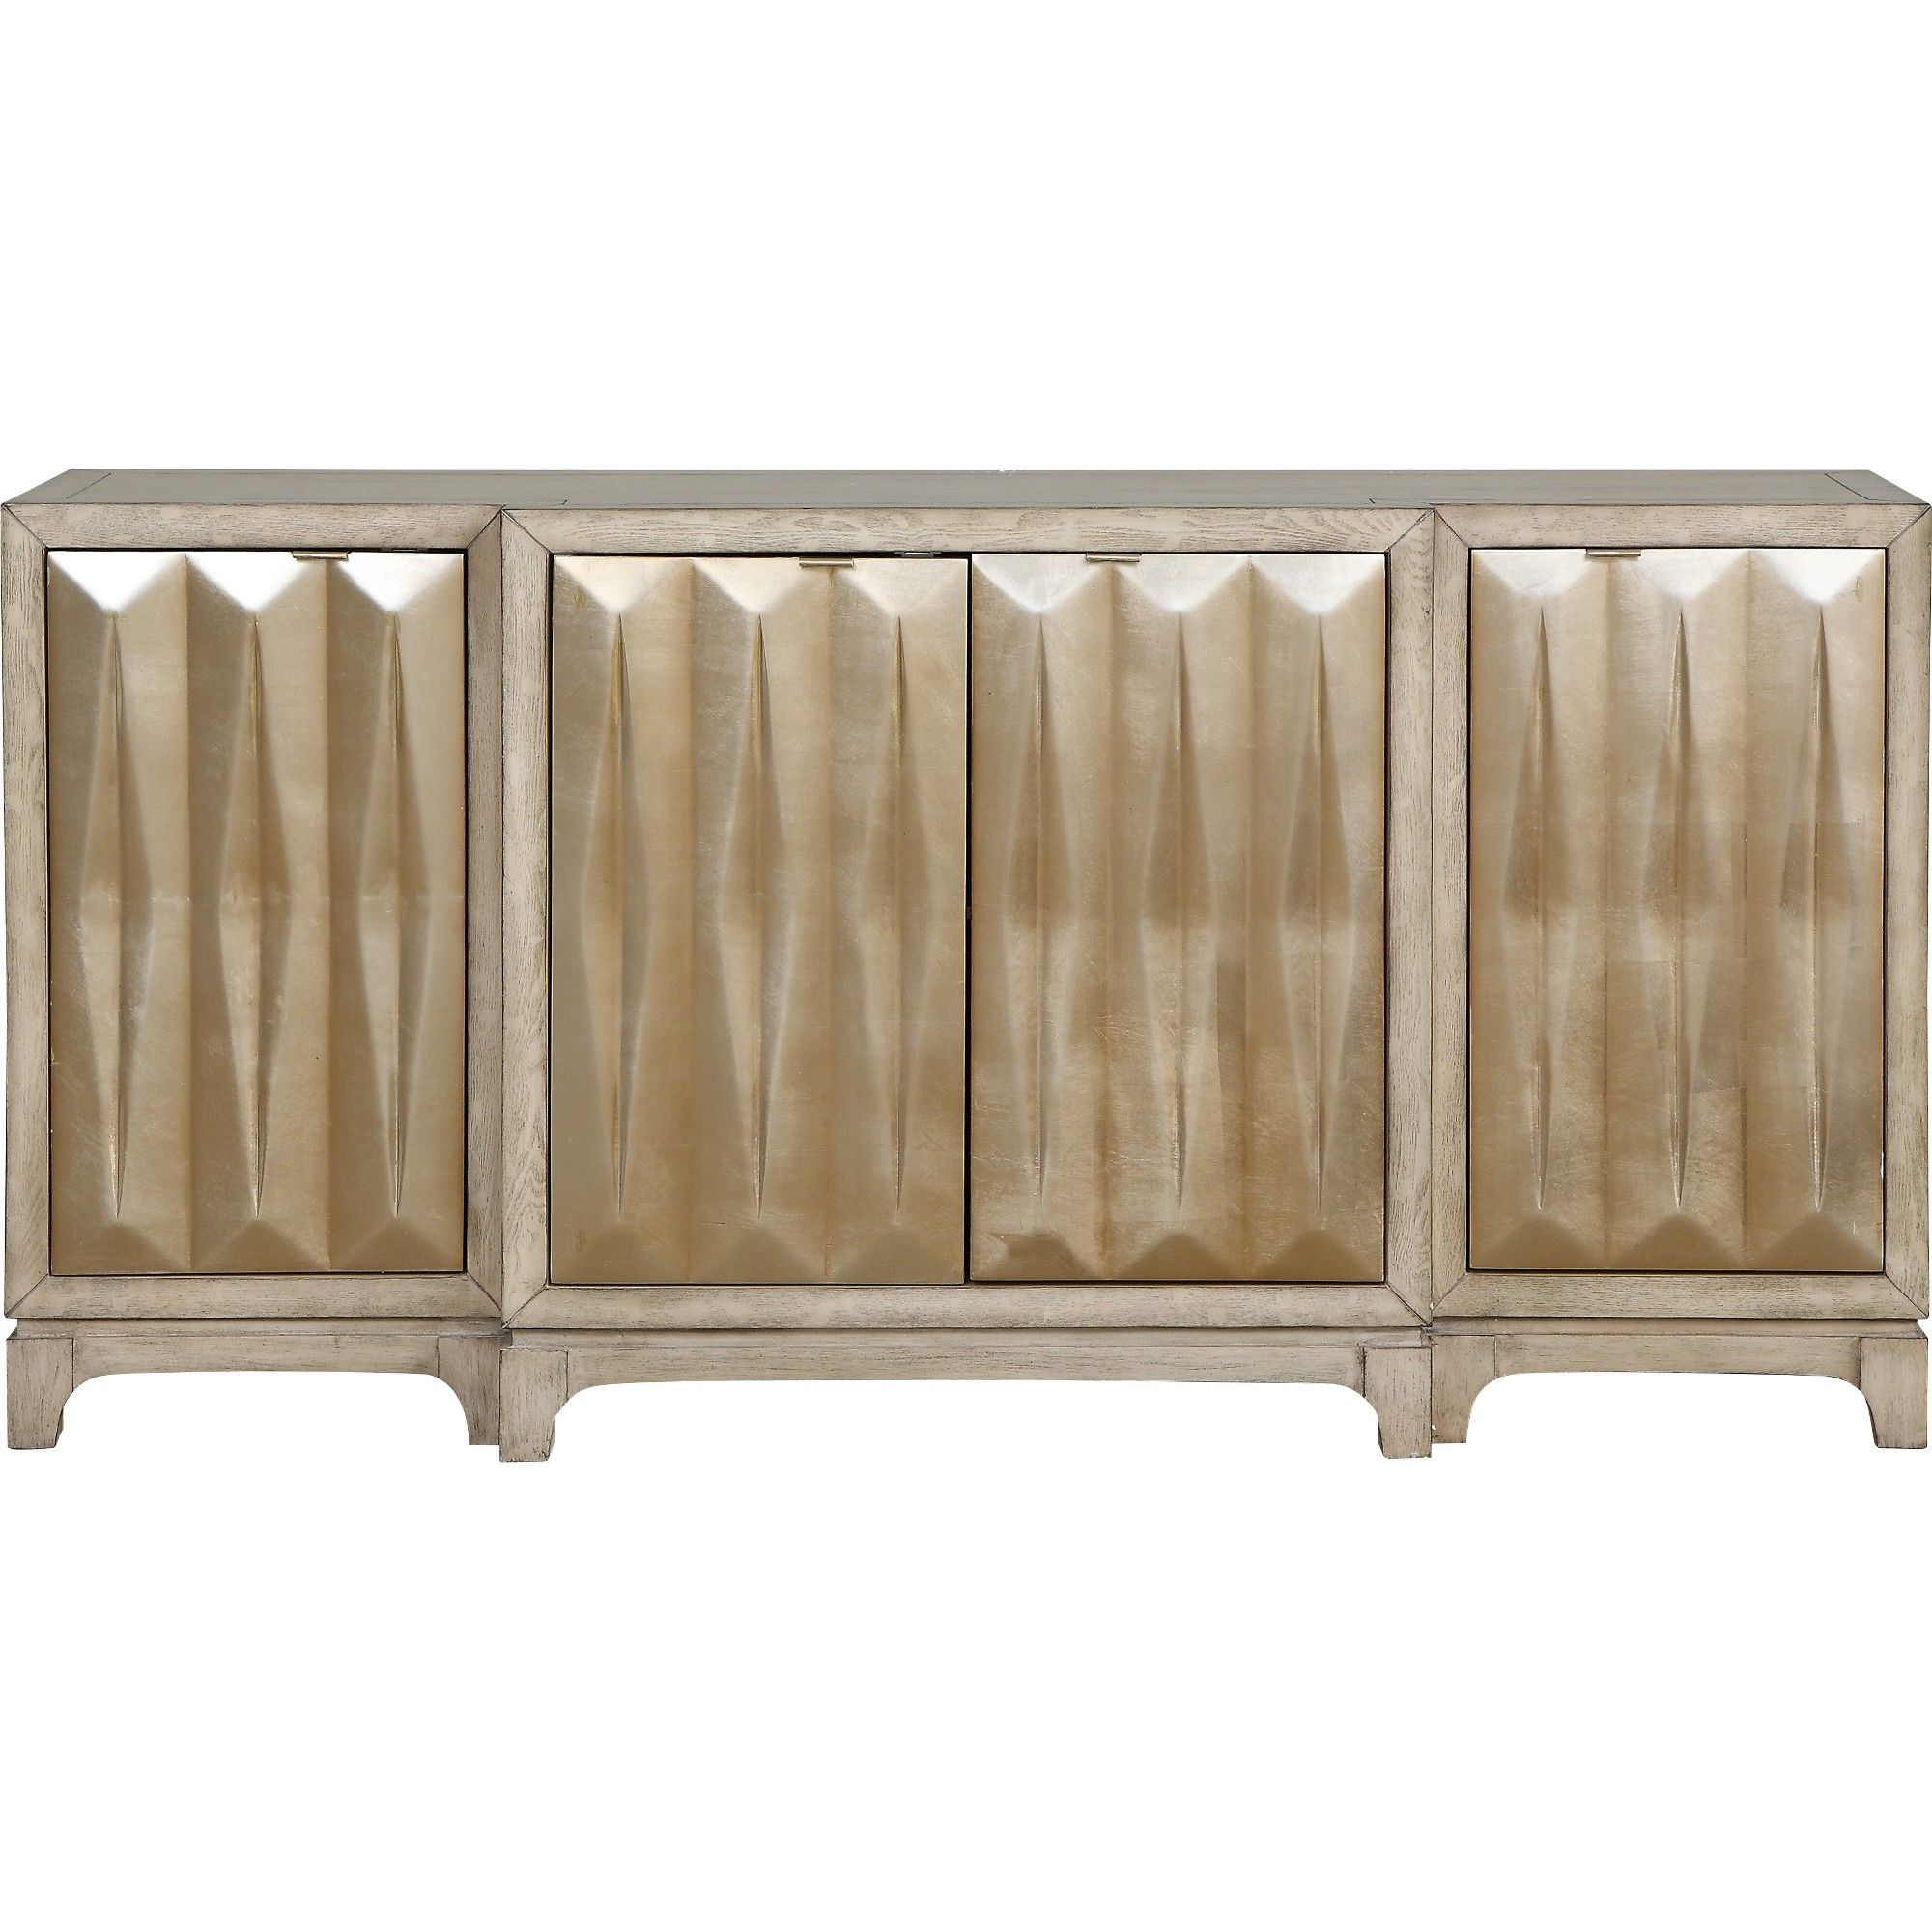 Well Liked Errol Media Credenzas Inside Treasure Trove Accents Luxe 4 Door Media Credenza White/gold (Gallery 5 of 20)